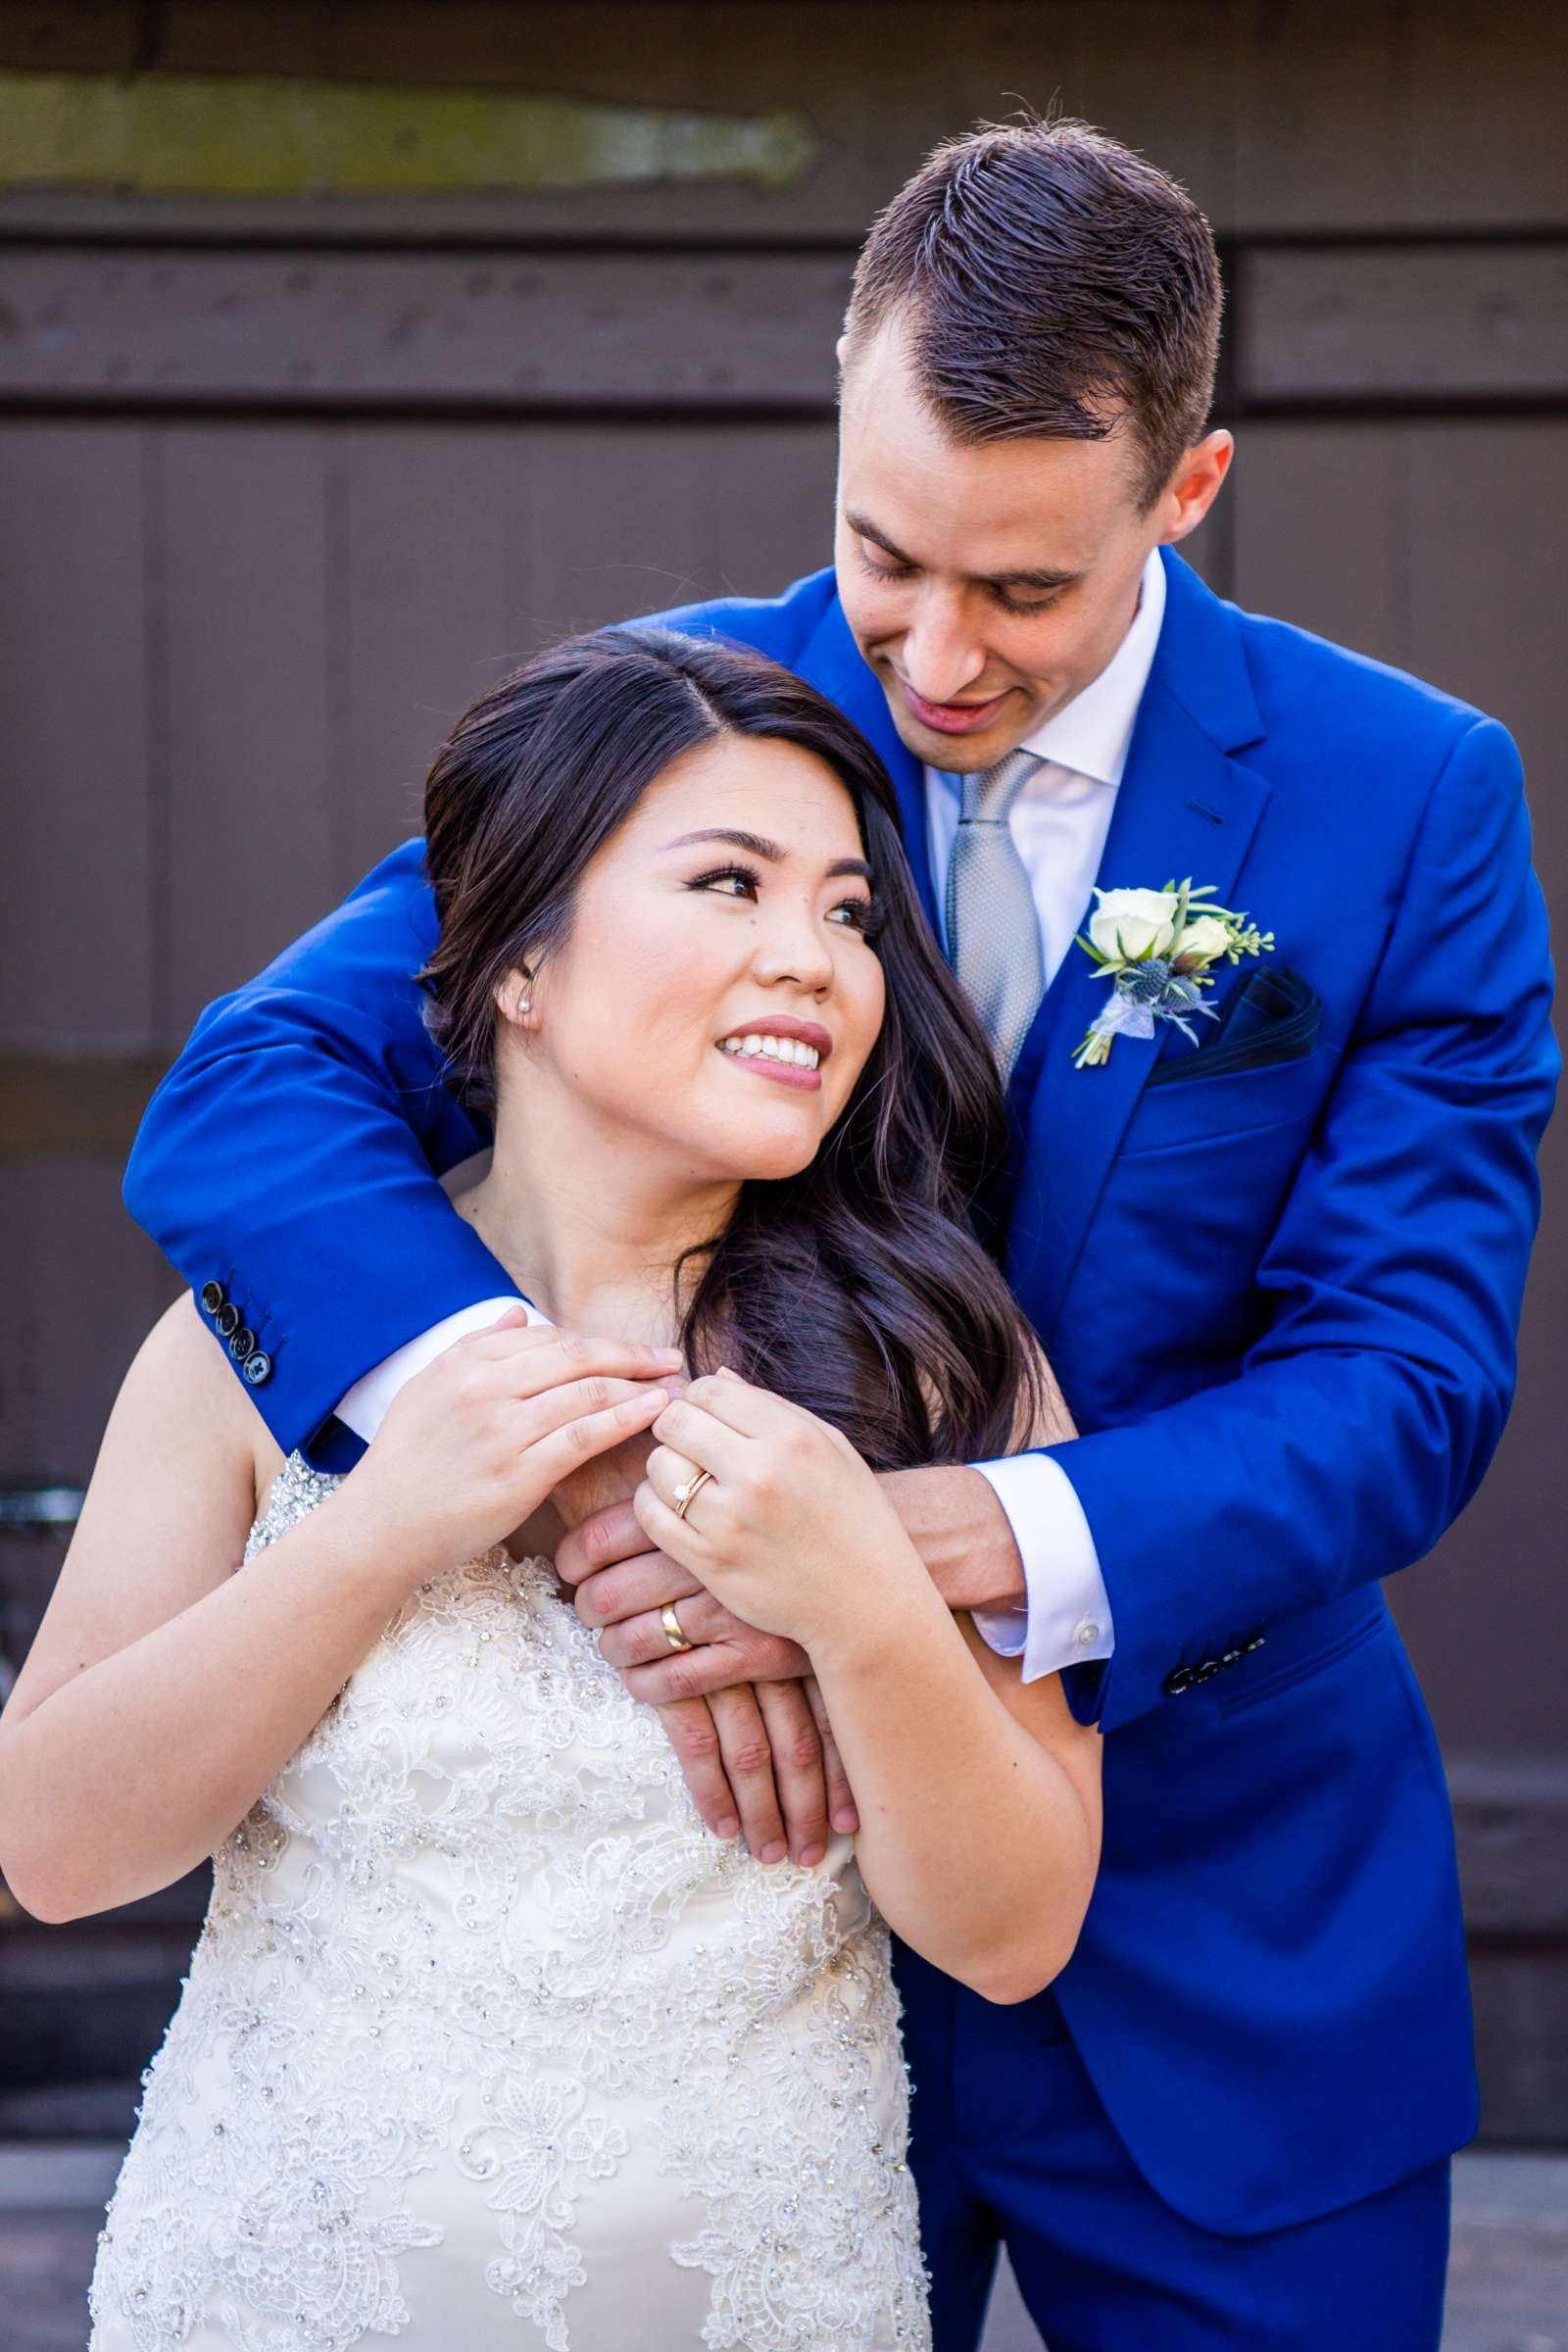 Mt Woodson Castle Wedding coordinated by I Do Weddings, Aya and Jared Wedding Photo #486976 by True Photography